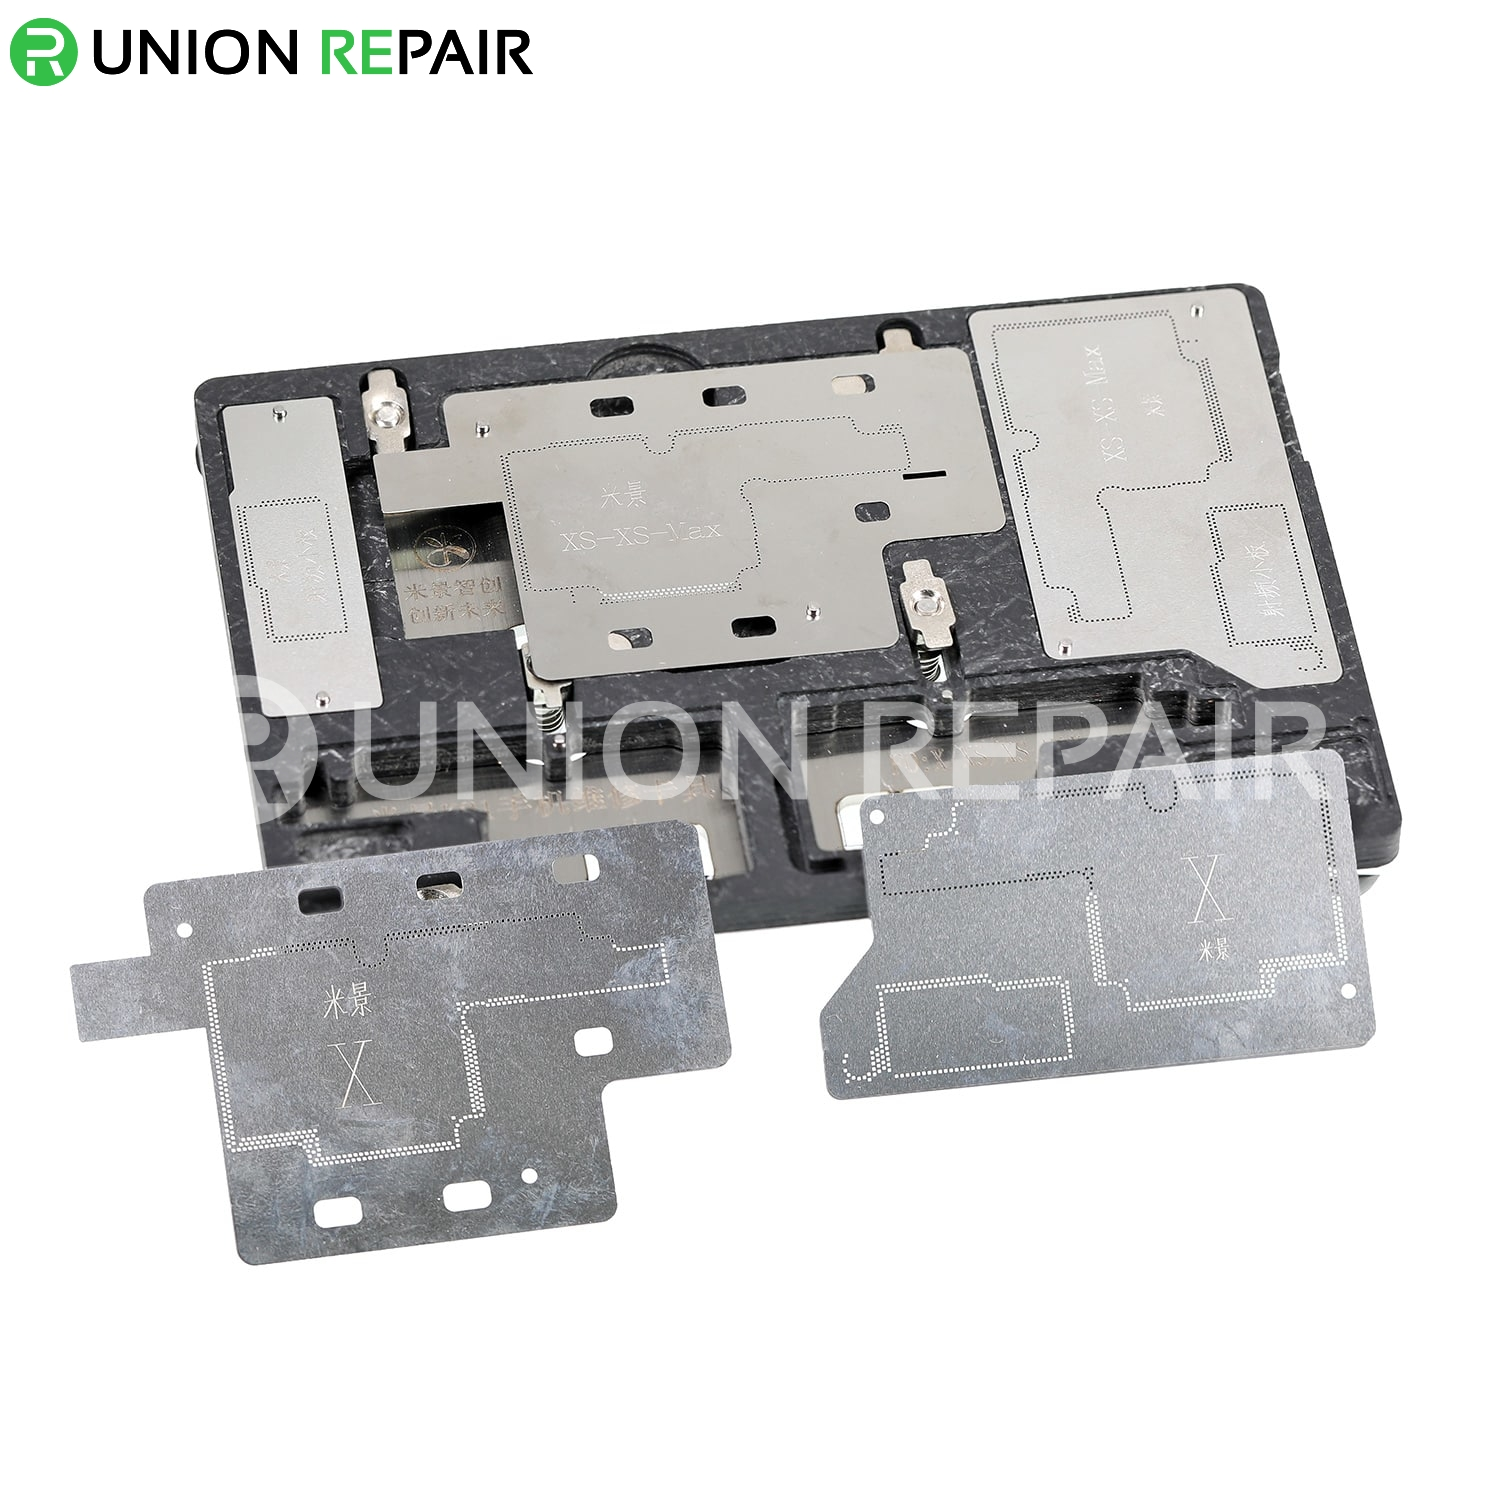 MJ K21 Circuit Board PCB Holder for iPhone X/XS/XS MAX